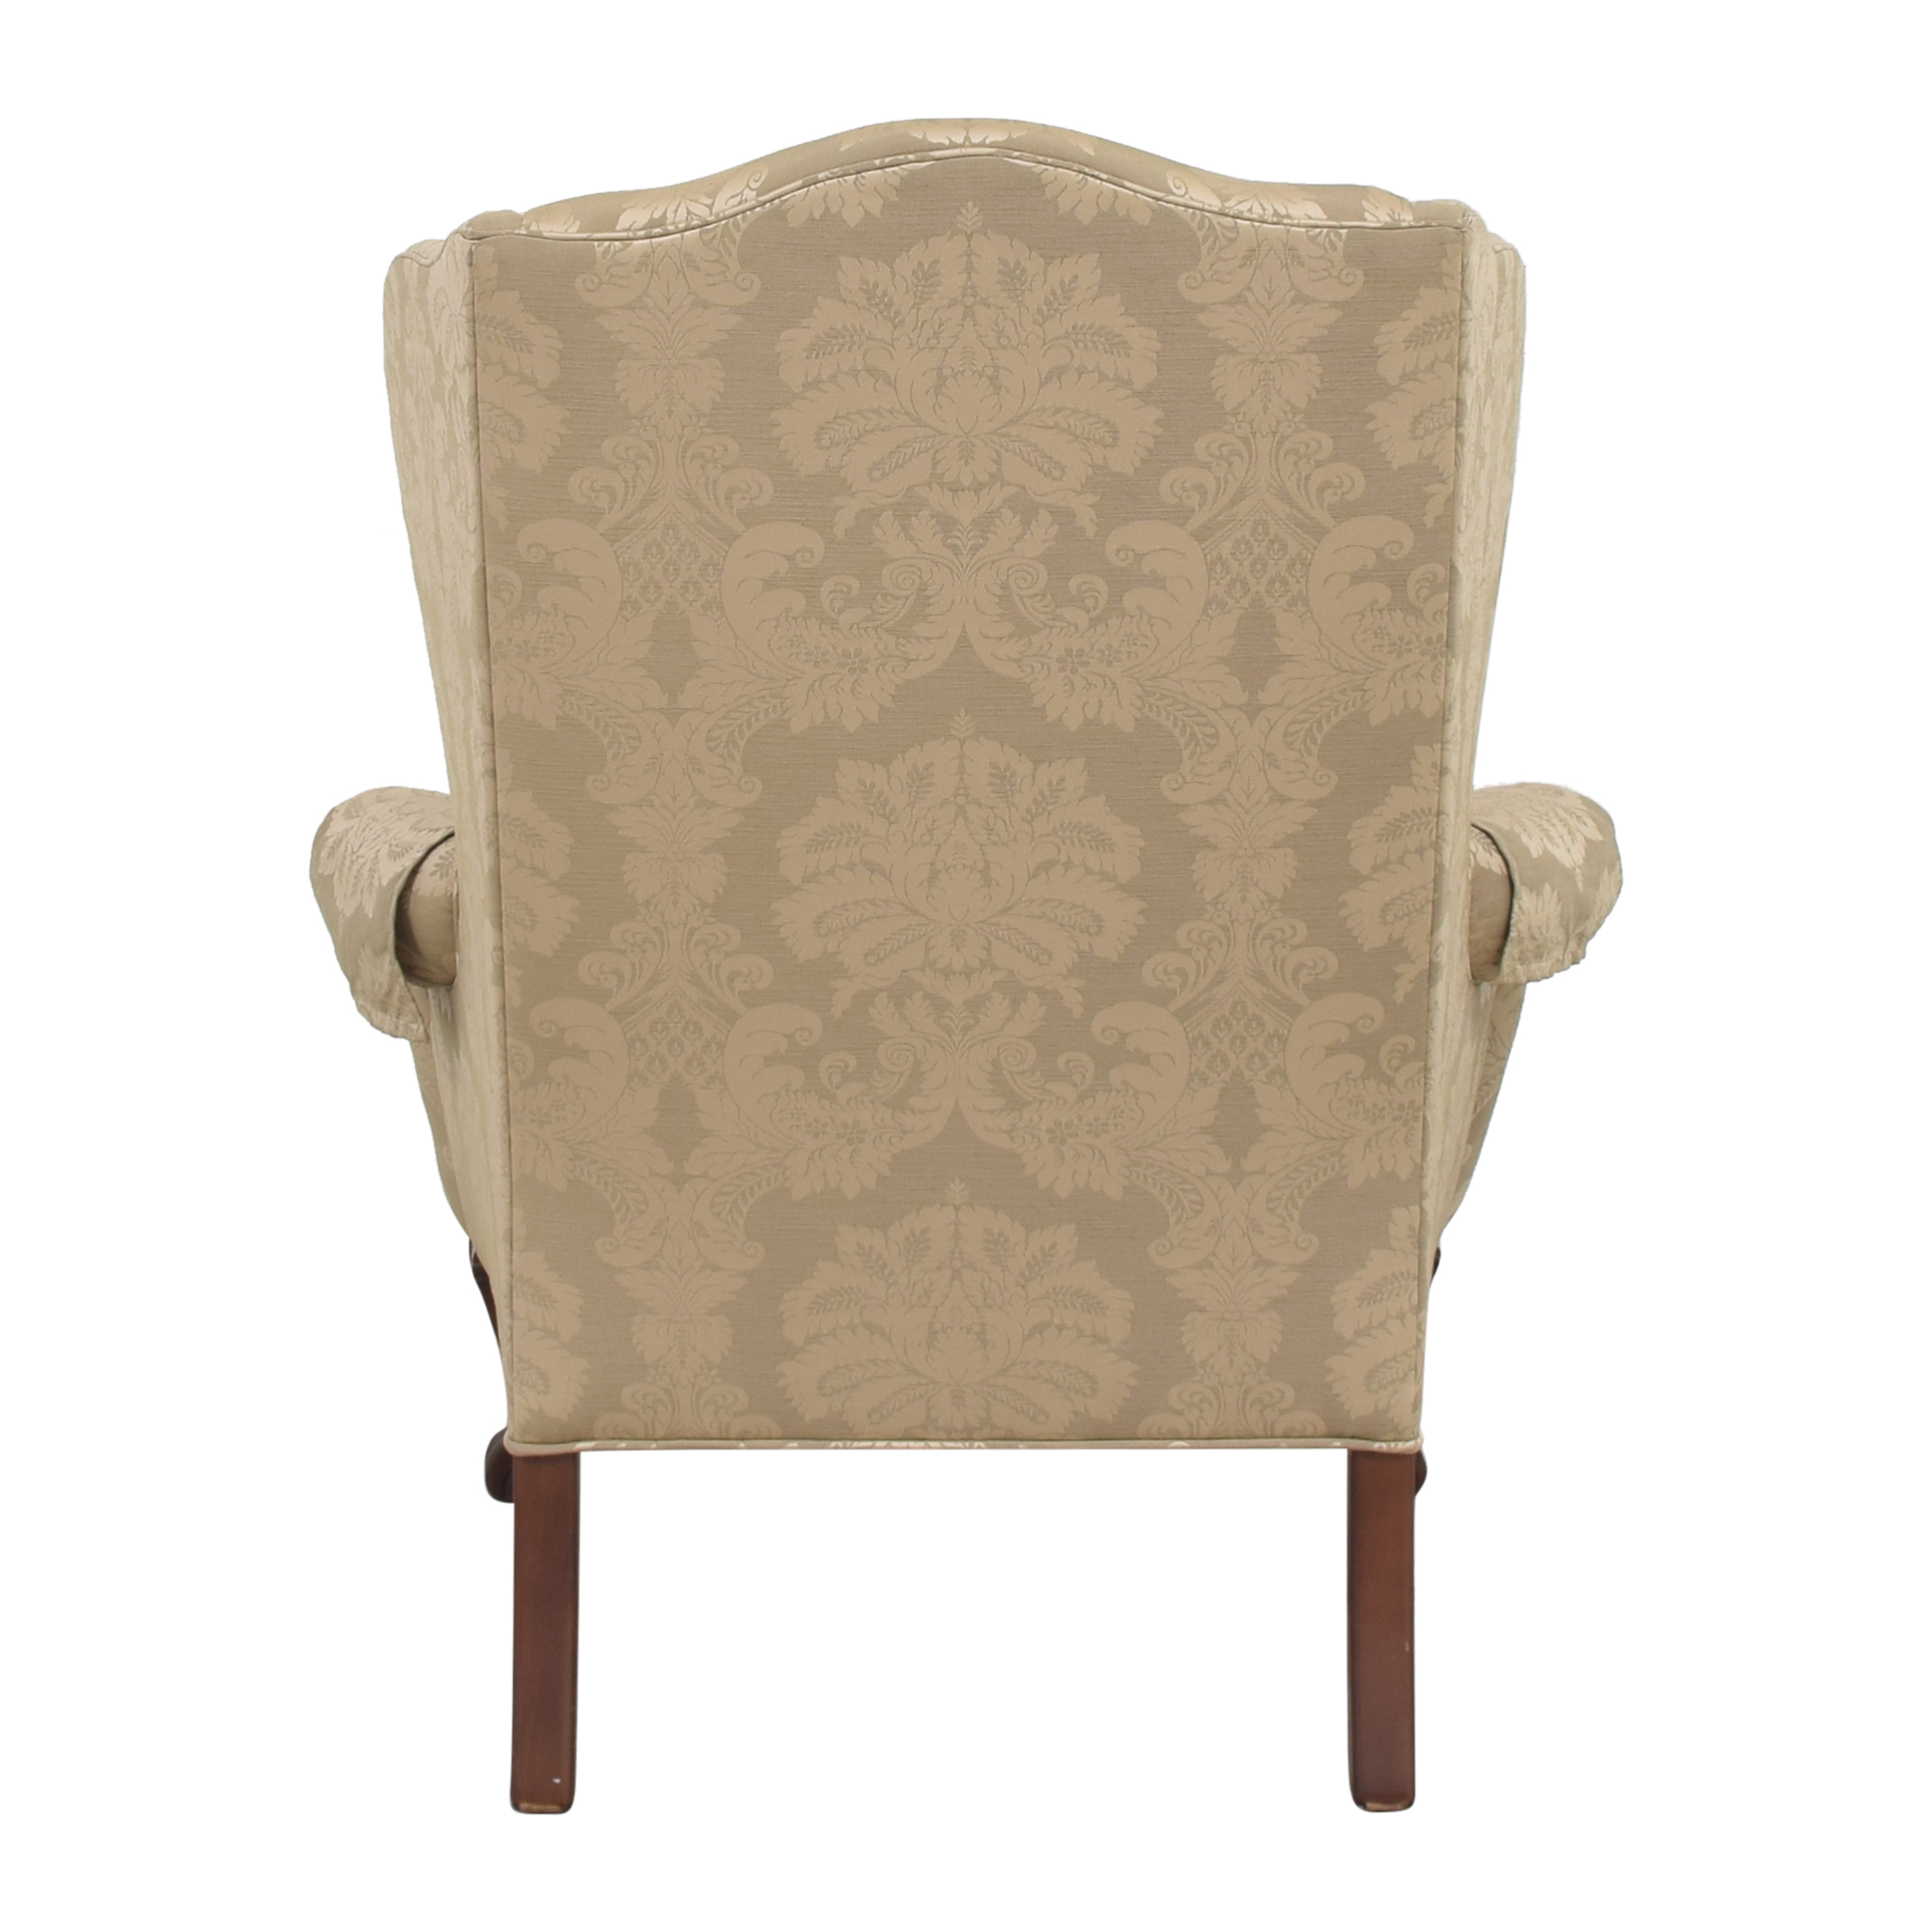 Ethan Allen Ethan Allen Wing Accent Chair Chairs